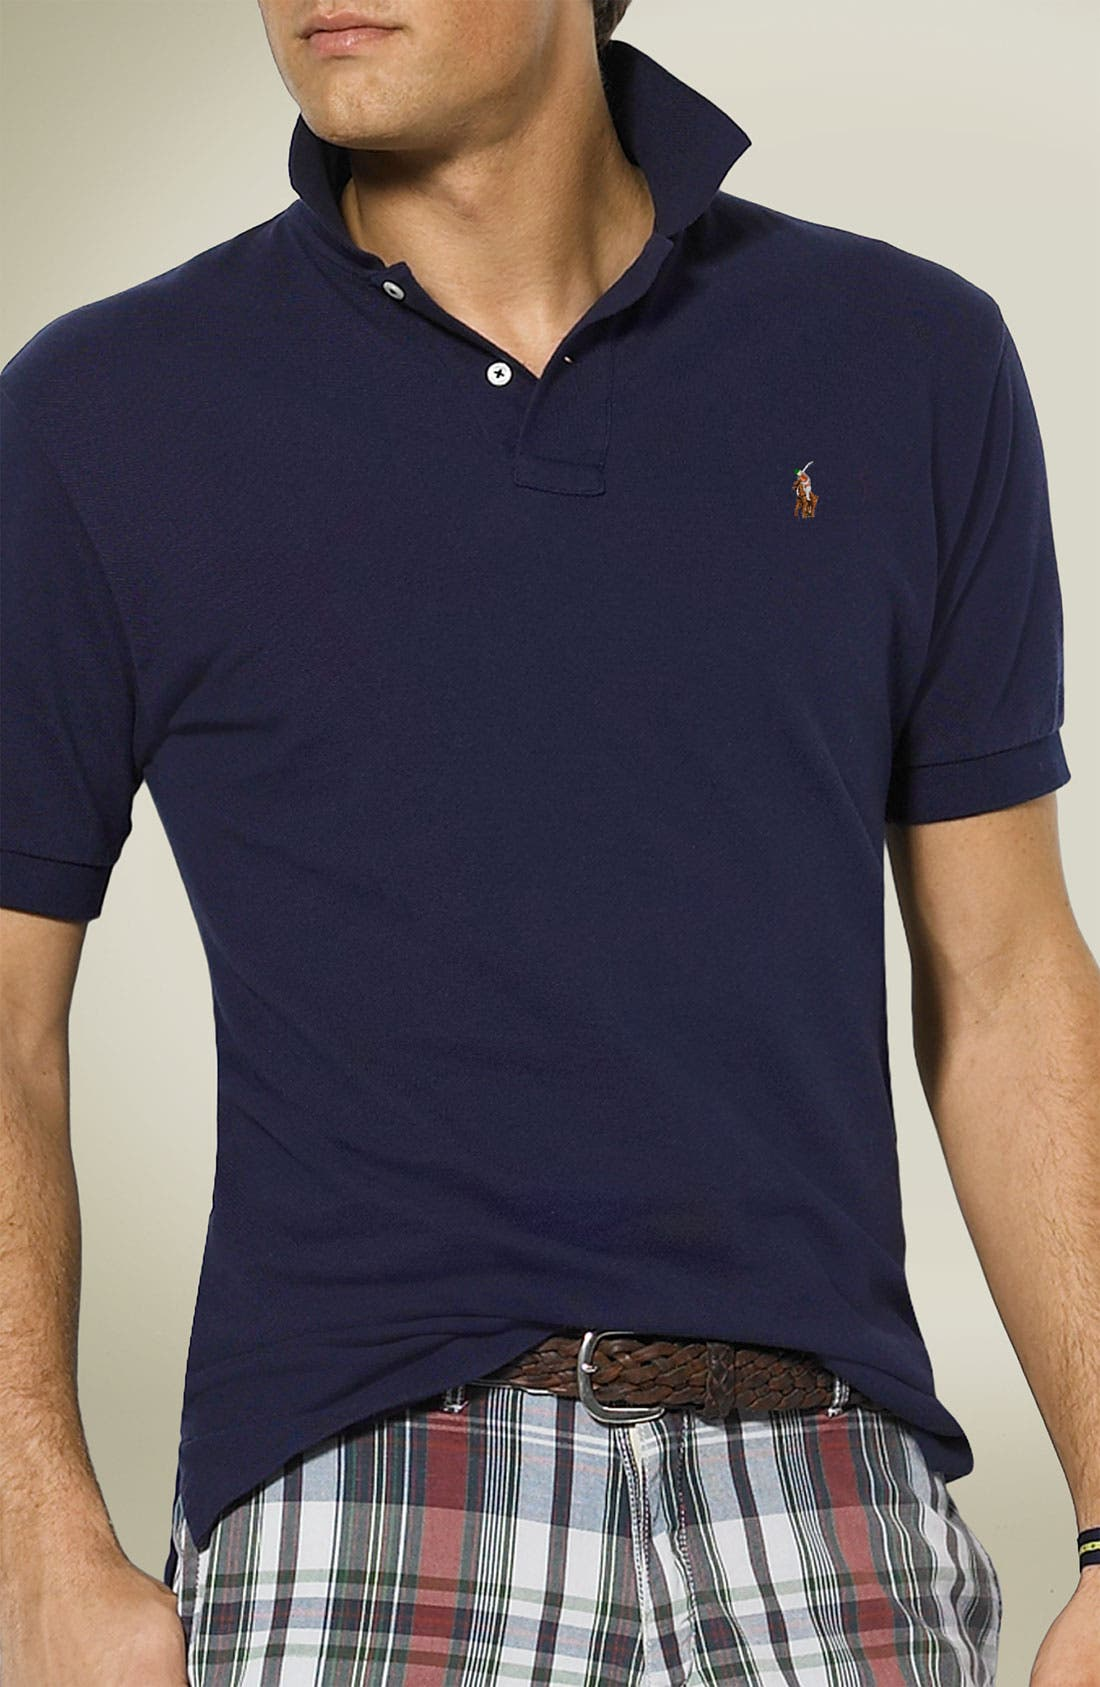 Alternate Image 1 Selected - Polo Ralph Lauren Classic Fit Piqué Cotton Polo